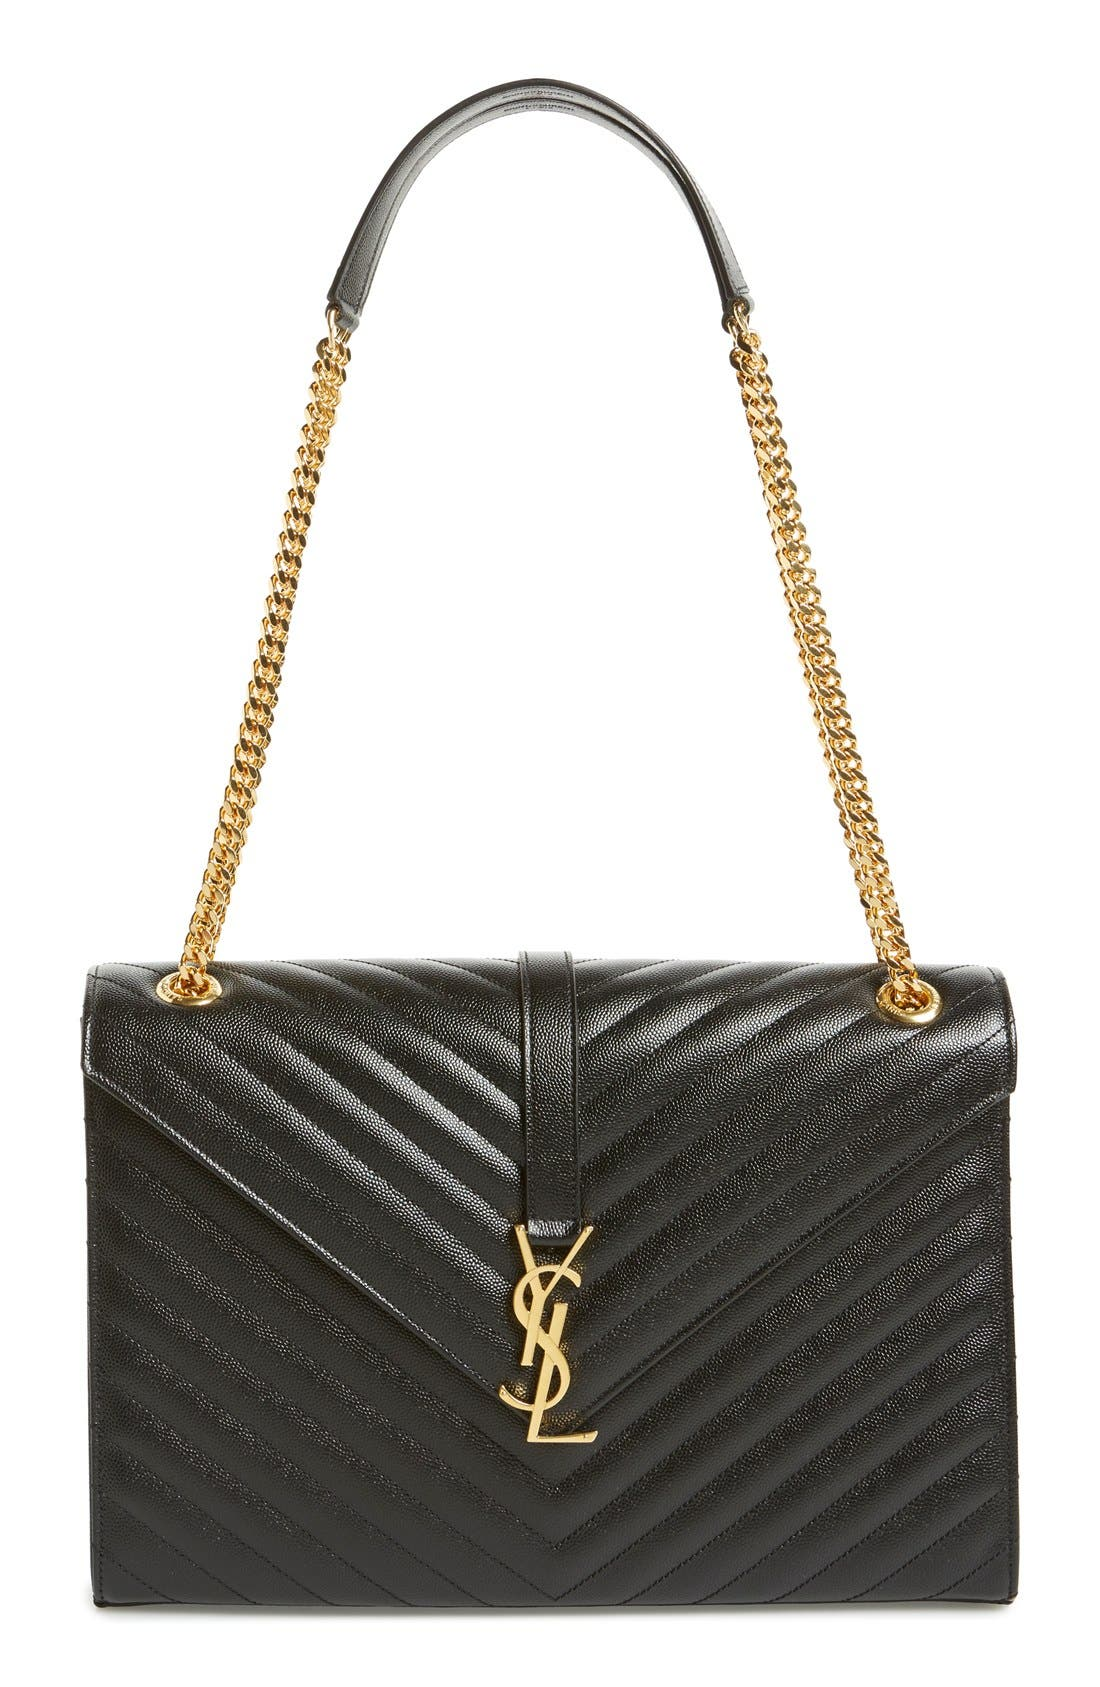 Alternate Image 1 Selected - Saint Laurent 'Large Monogram' Grained Leather Shoulder Bag